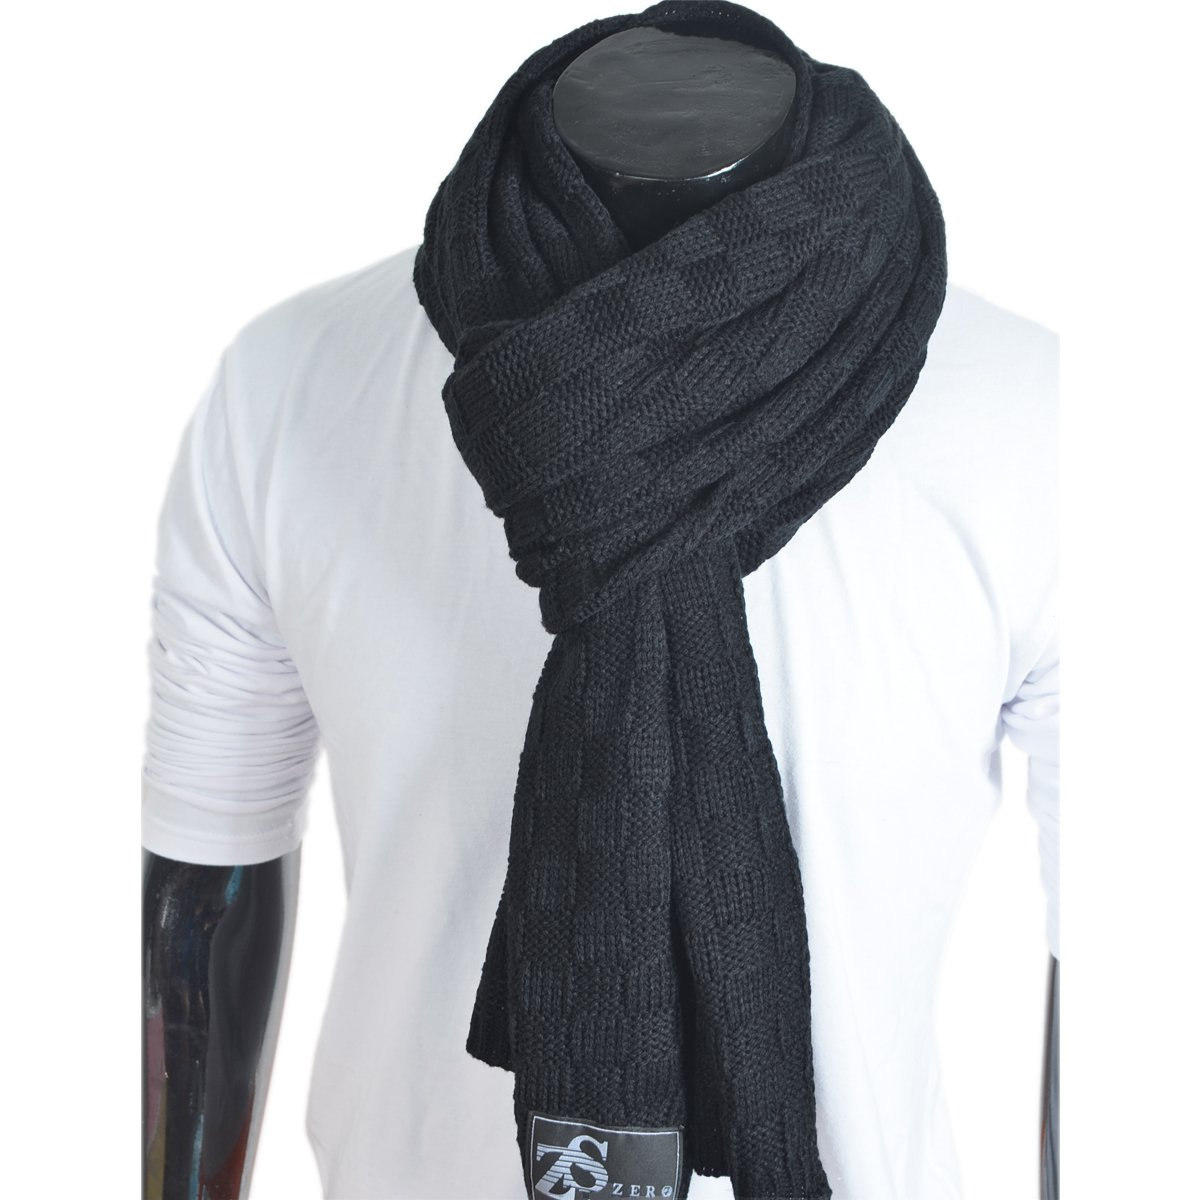 Stylish Unisex Daily Square Pattern Soft Knitted Winter Scarf E5031 (Black) by FORBUSITE